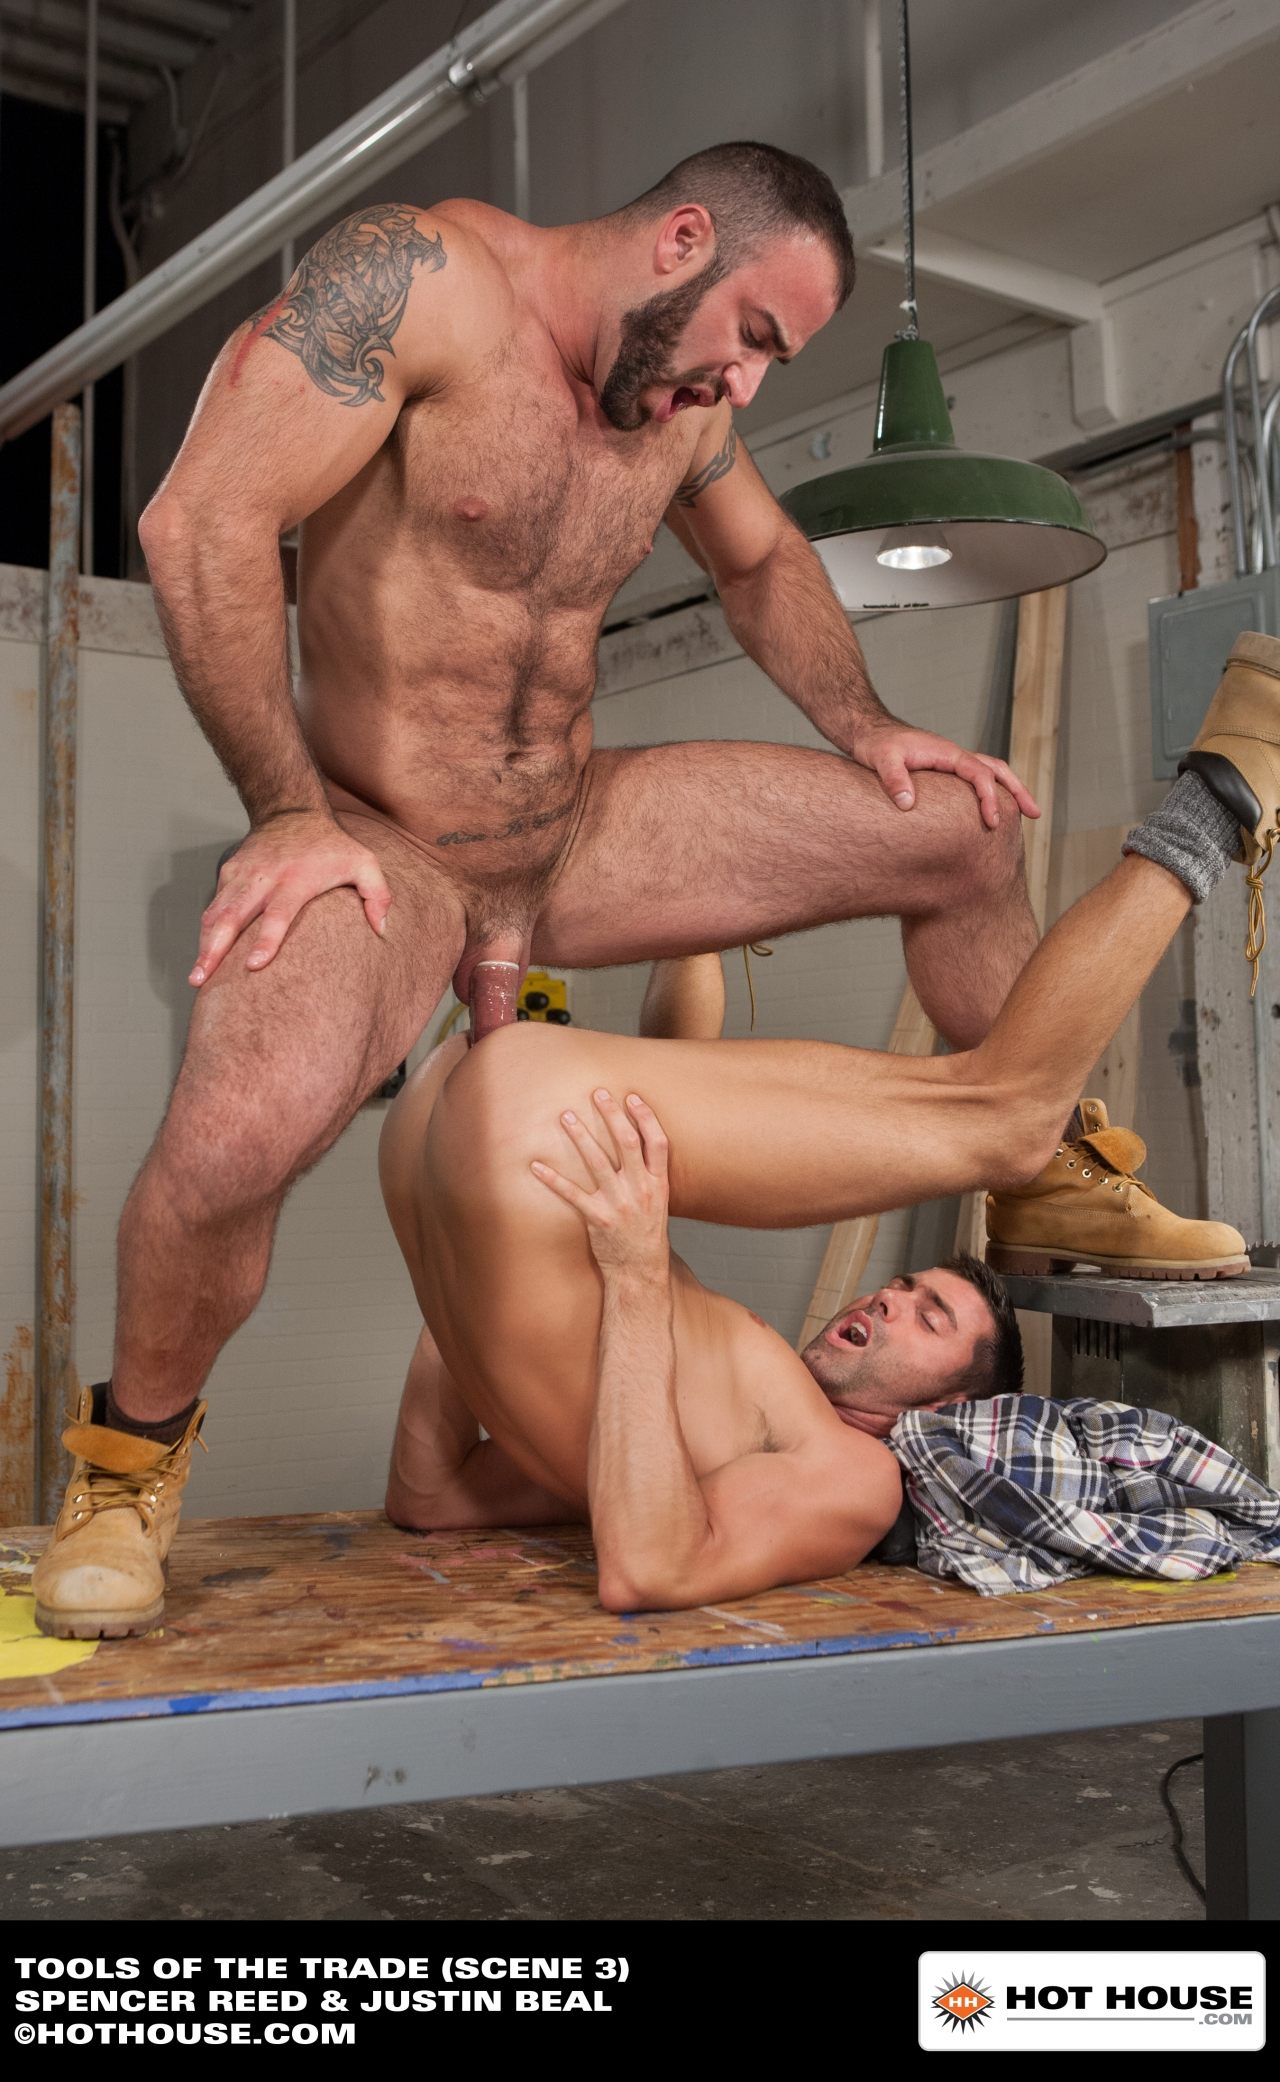 Hot House – Tools Of The Trade (Scene 3)